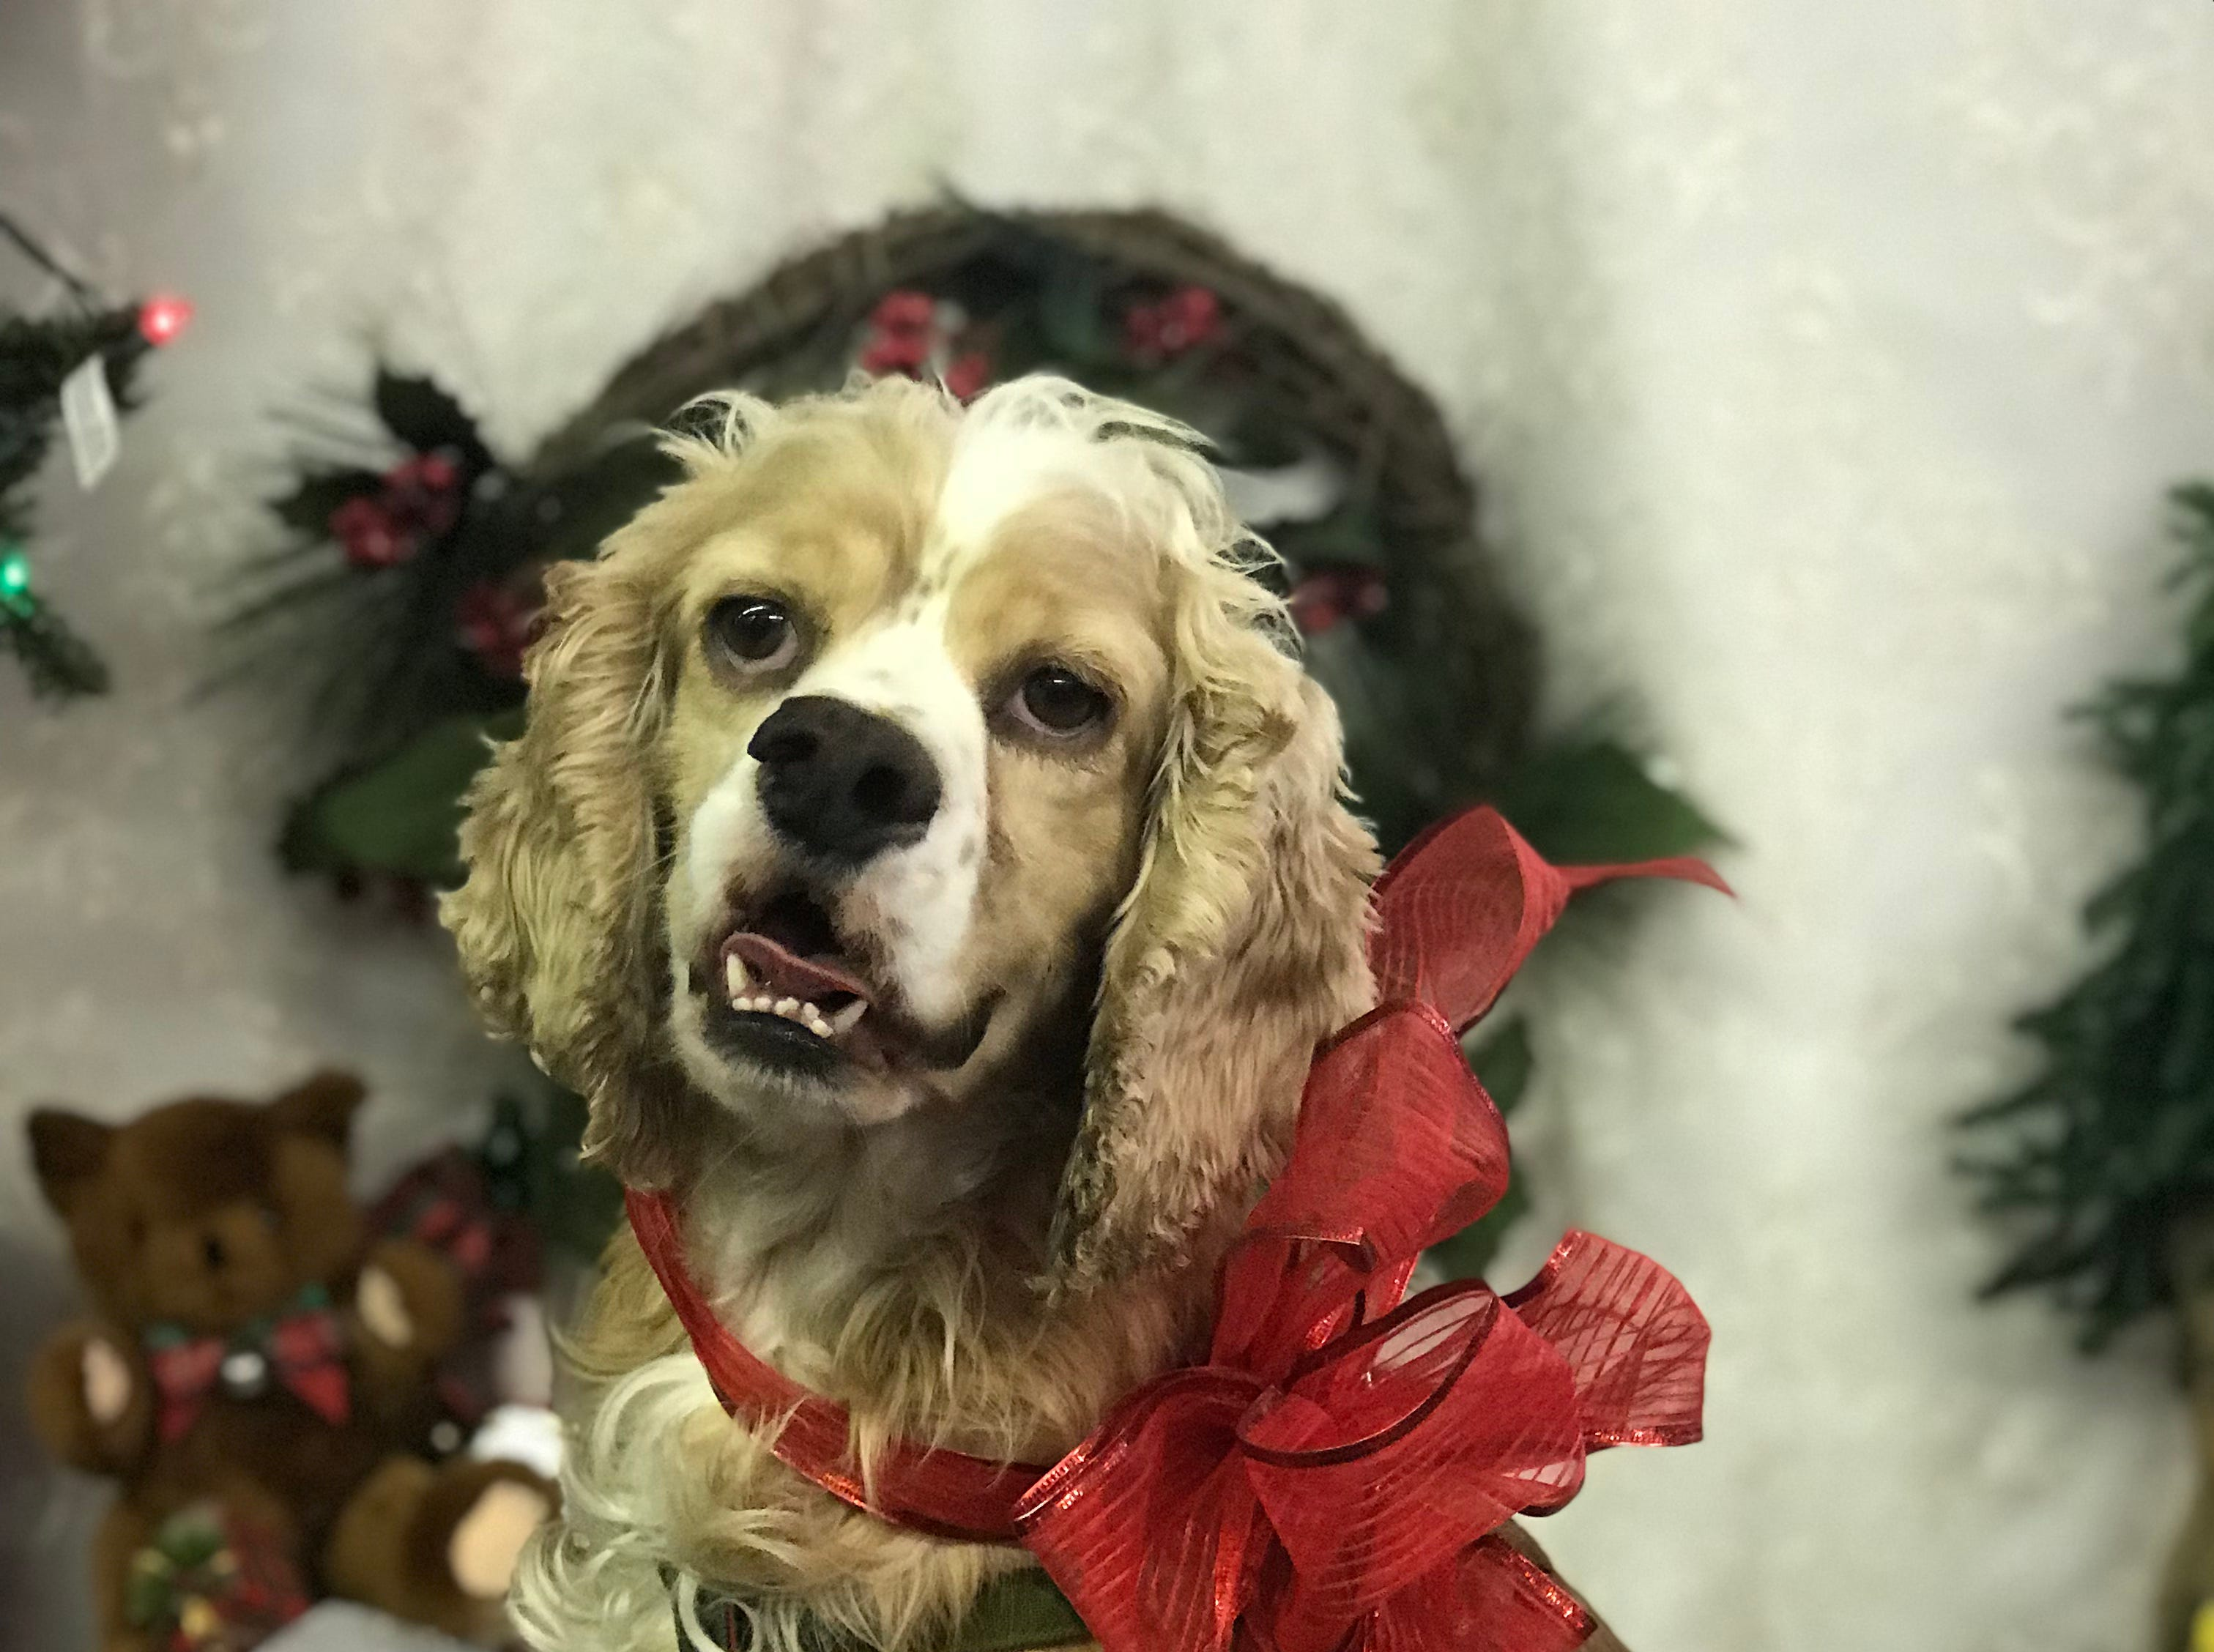 Joe is a 4- or 5-year-old, male cocker spaniel who has his natural tail. He does well with other dogs and is learning about cats. He walks on a harness. This sweet boy should bond well with his person. Visit Tails of Rescue Adoption Center, 981 Lake Blvd., Redding. Call 448-7444. Go to http://tailsofrescue.org.